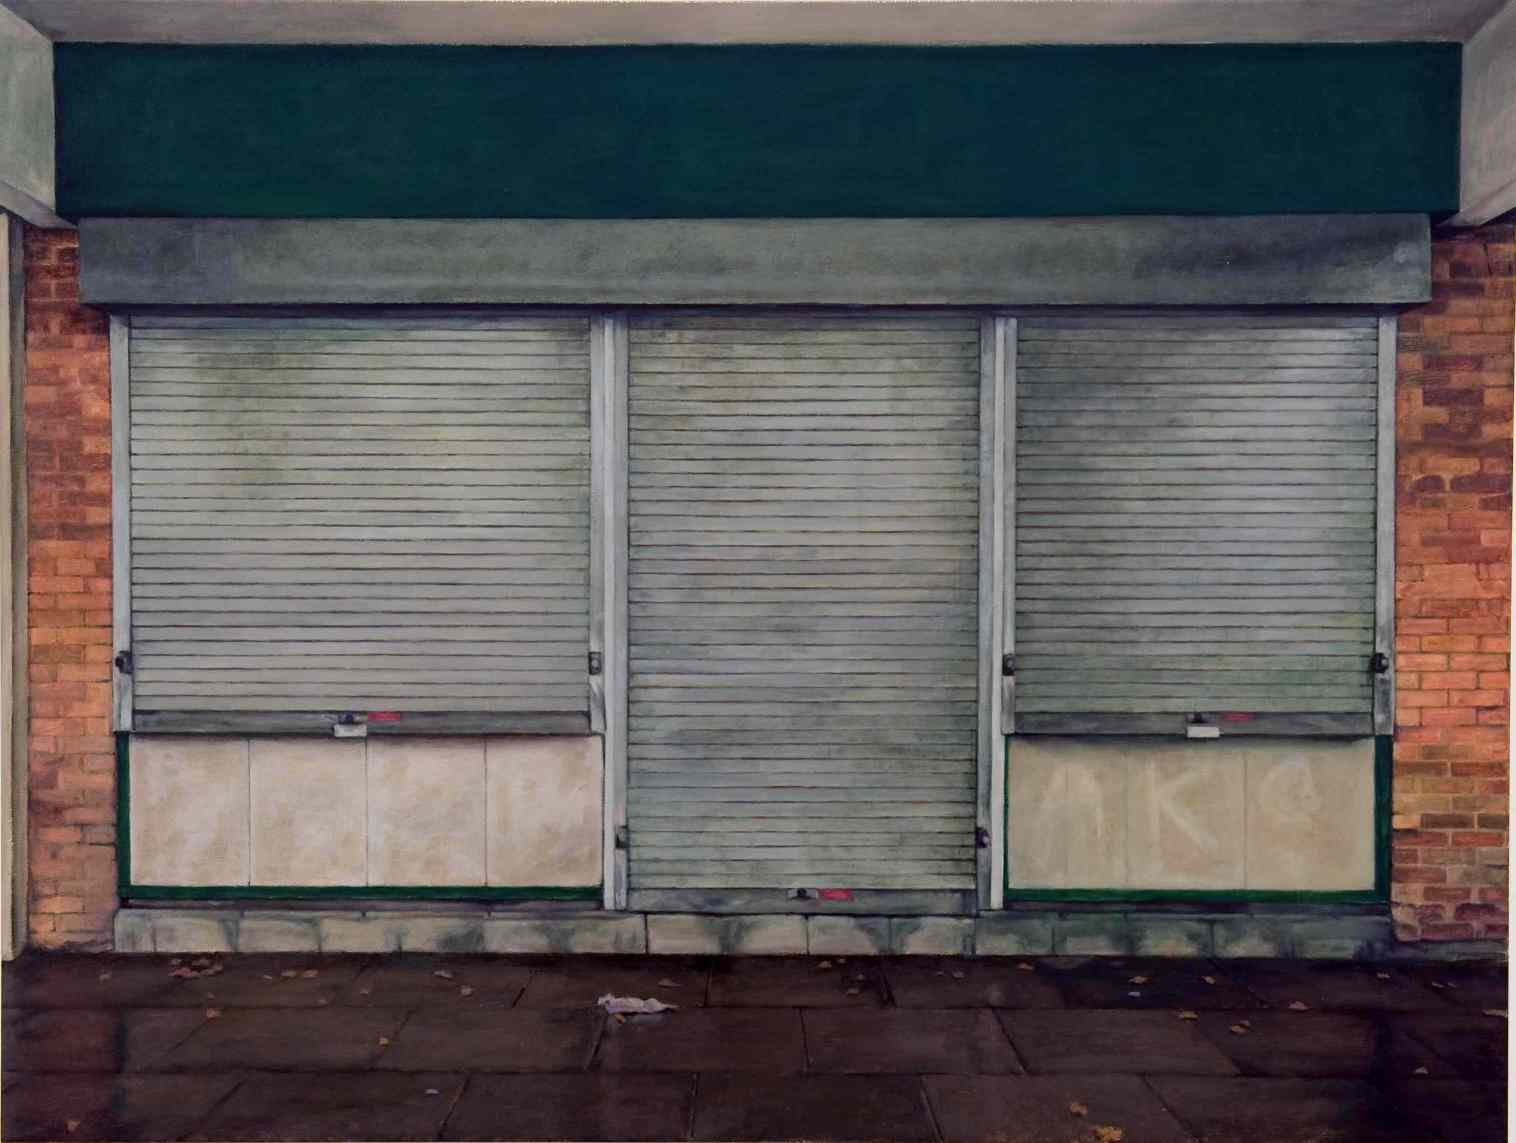 George Shaw, Shut Up, 2011